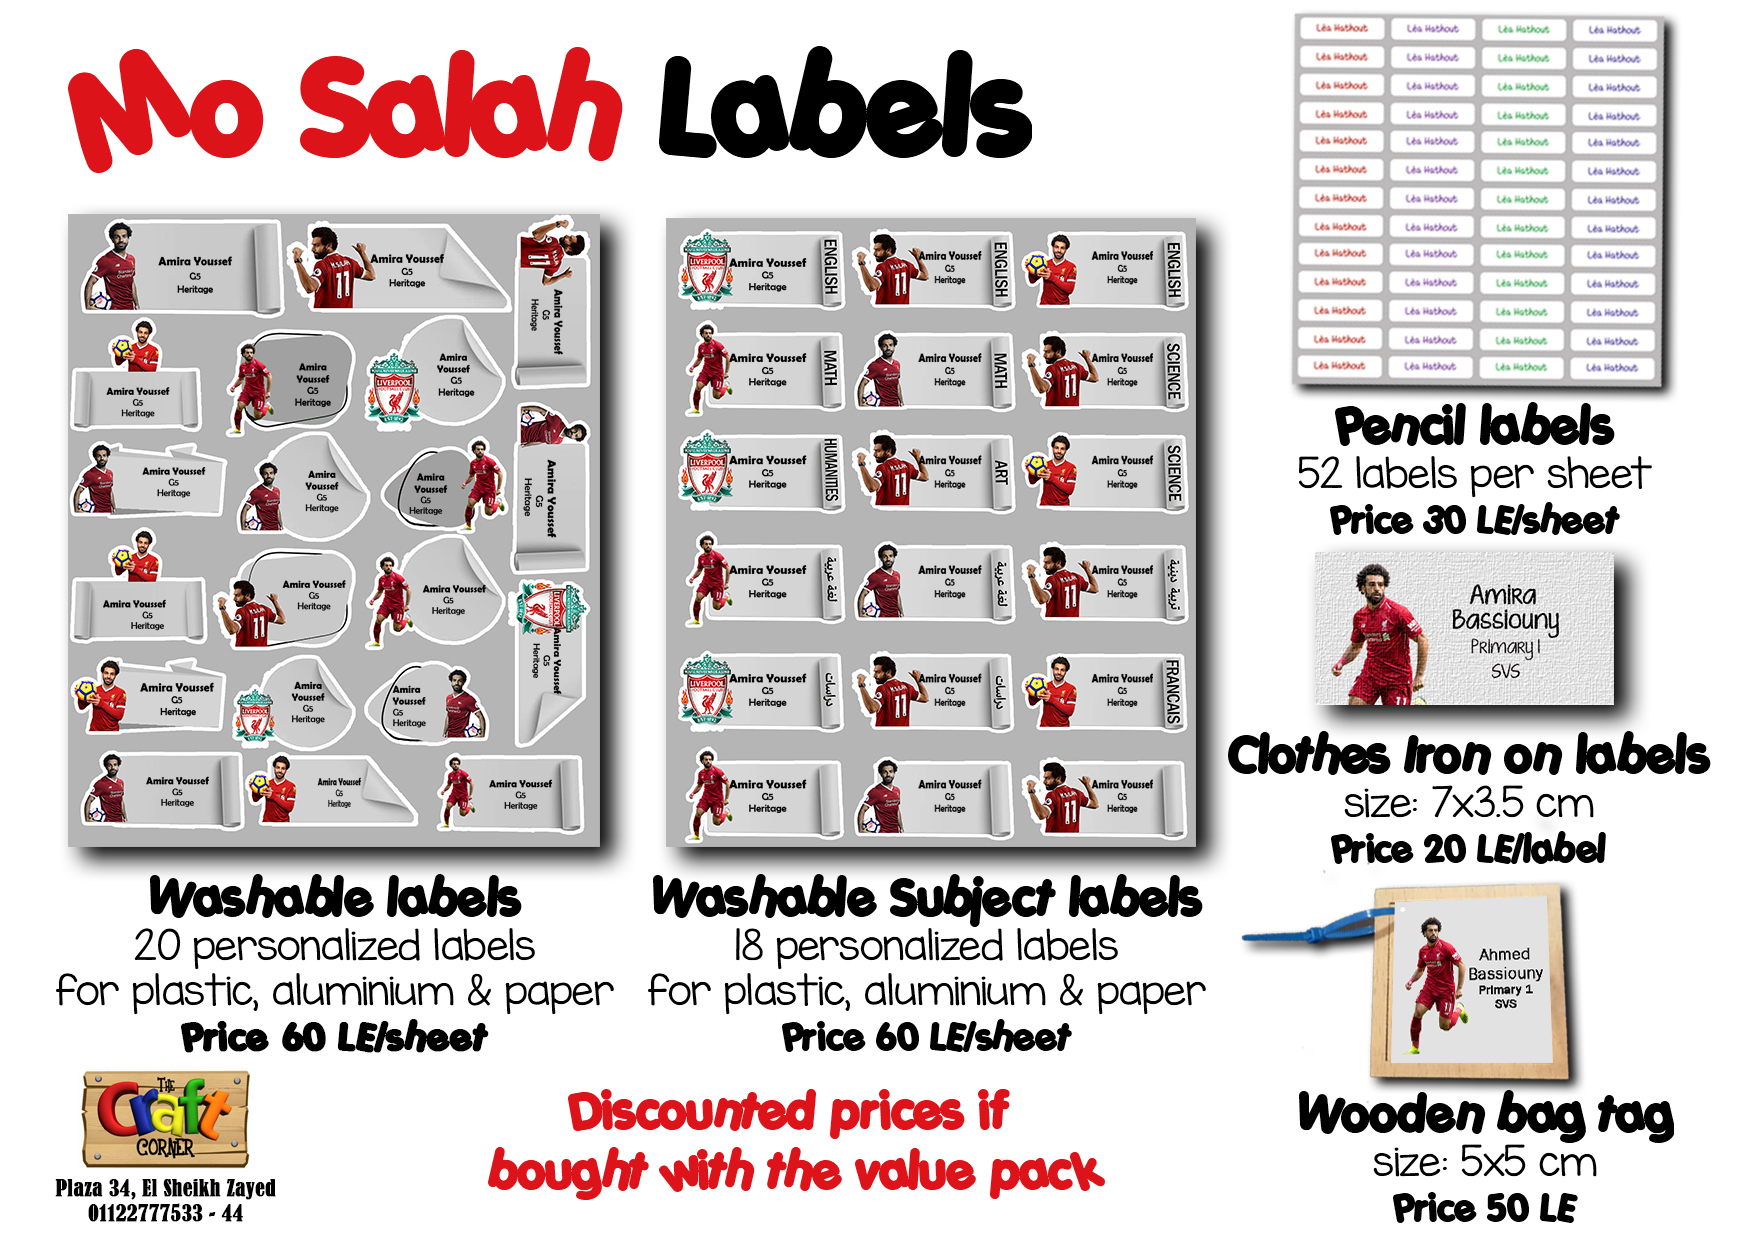 Mo salah Labels